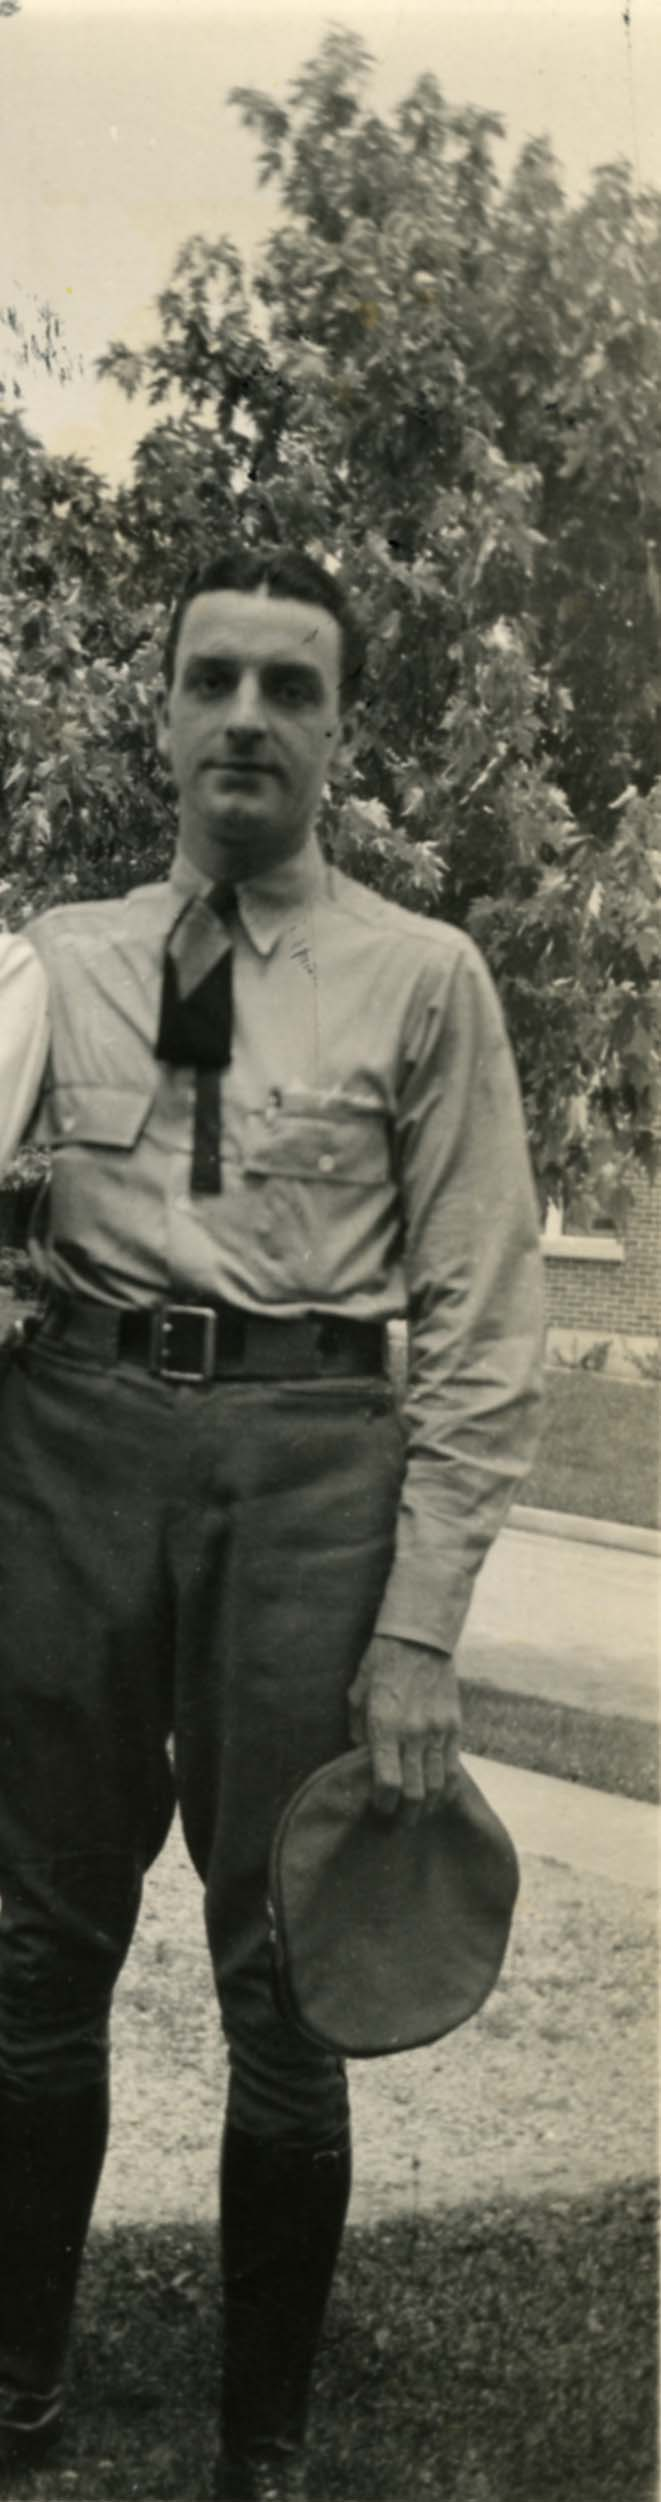 Howard in uniform